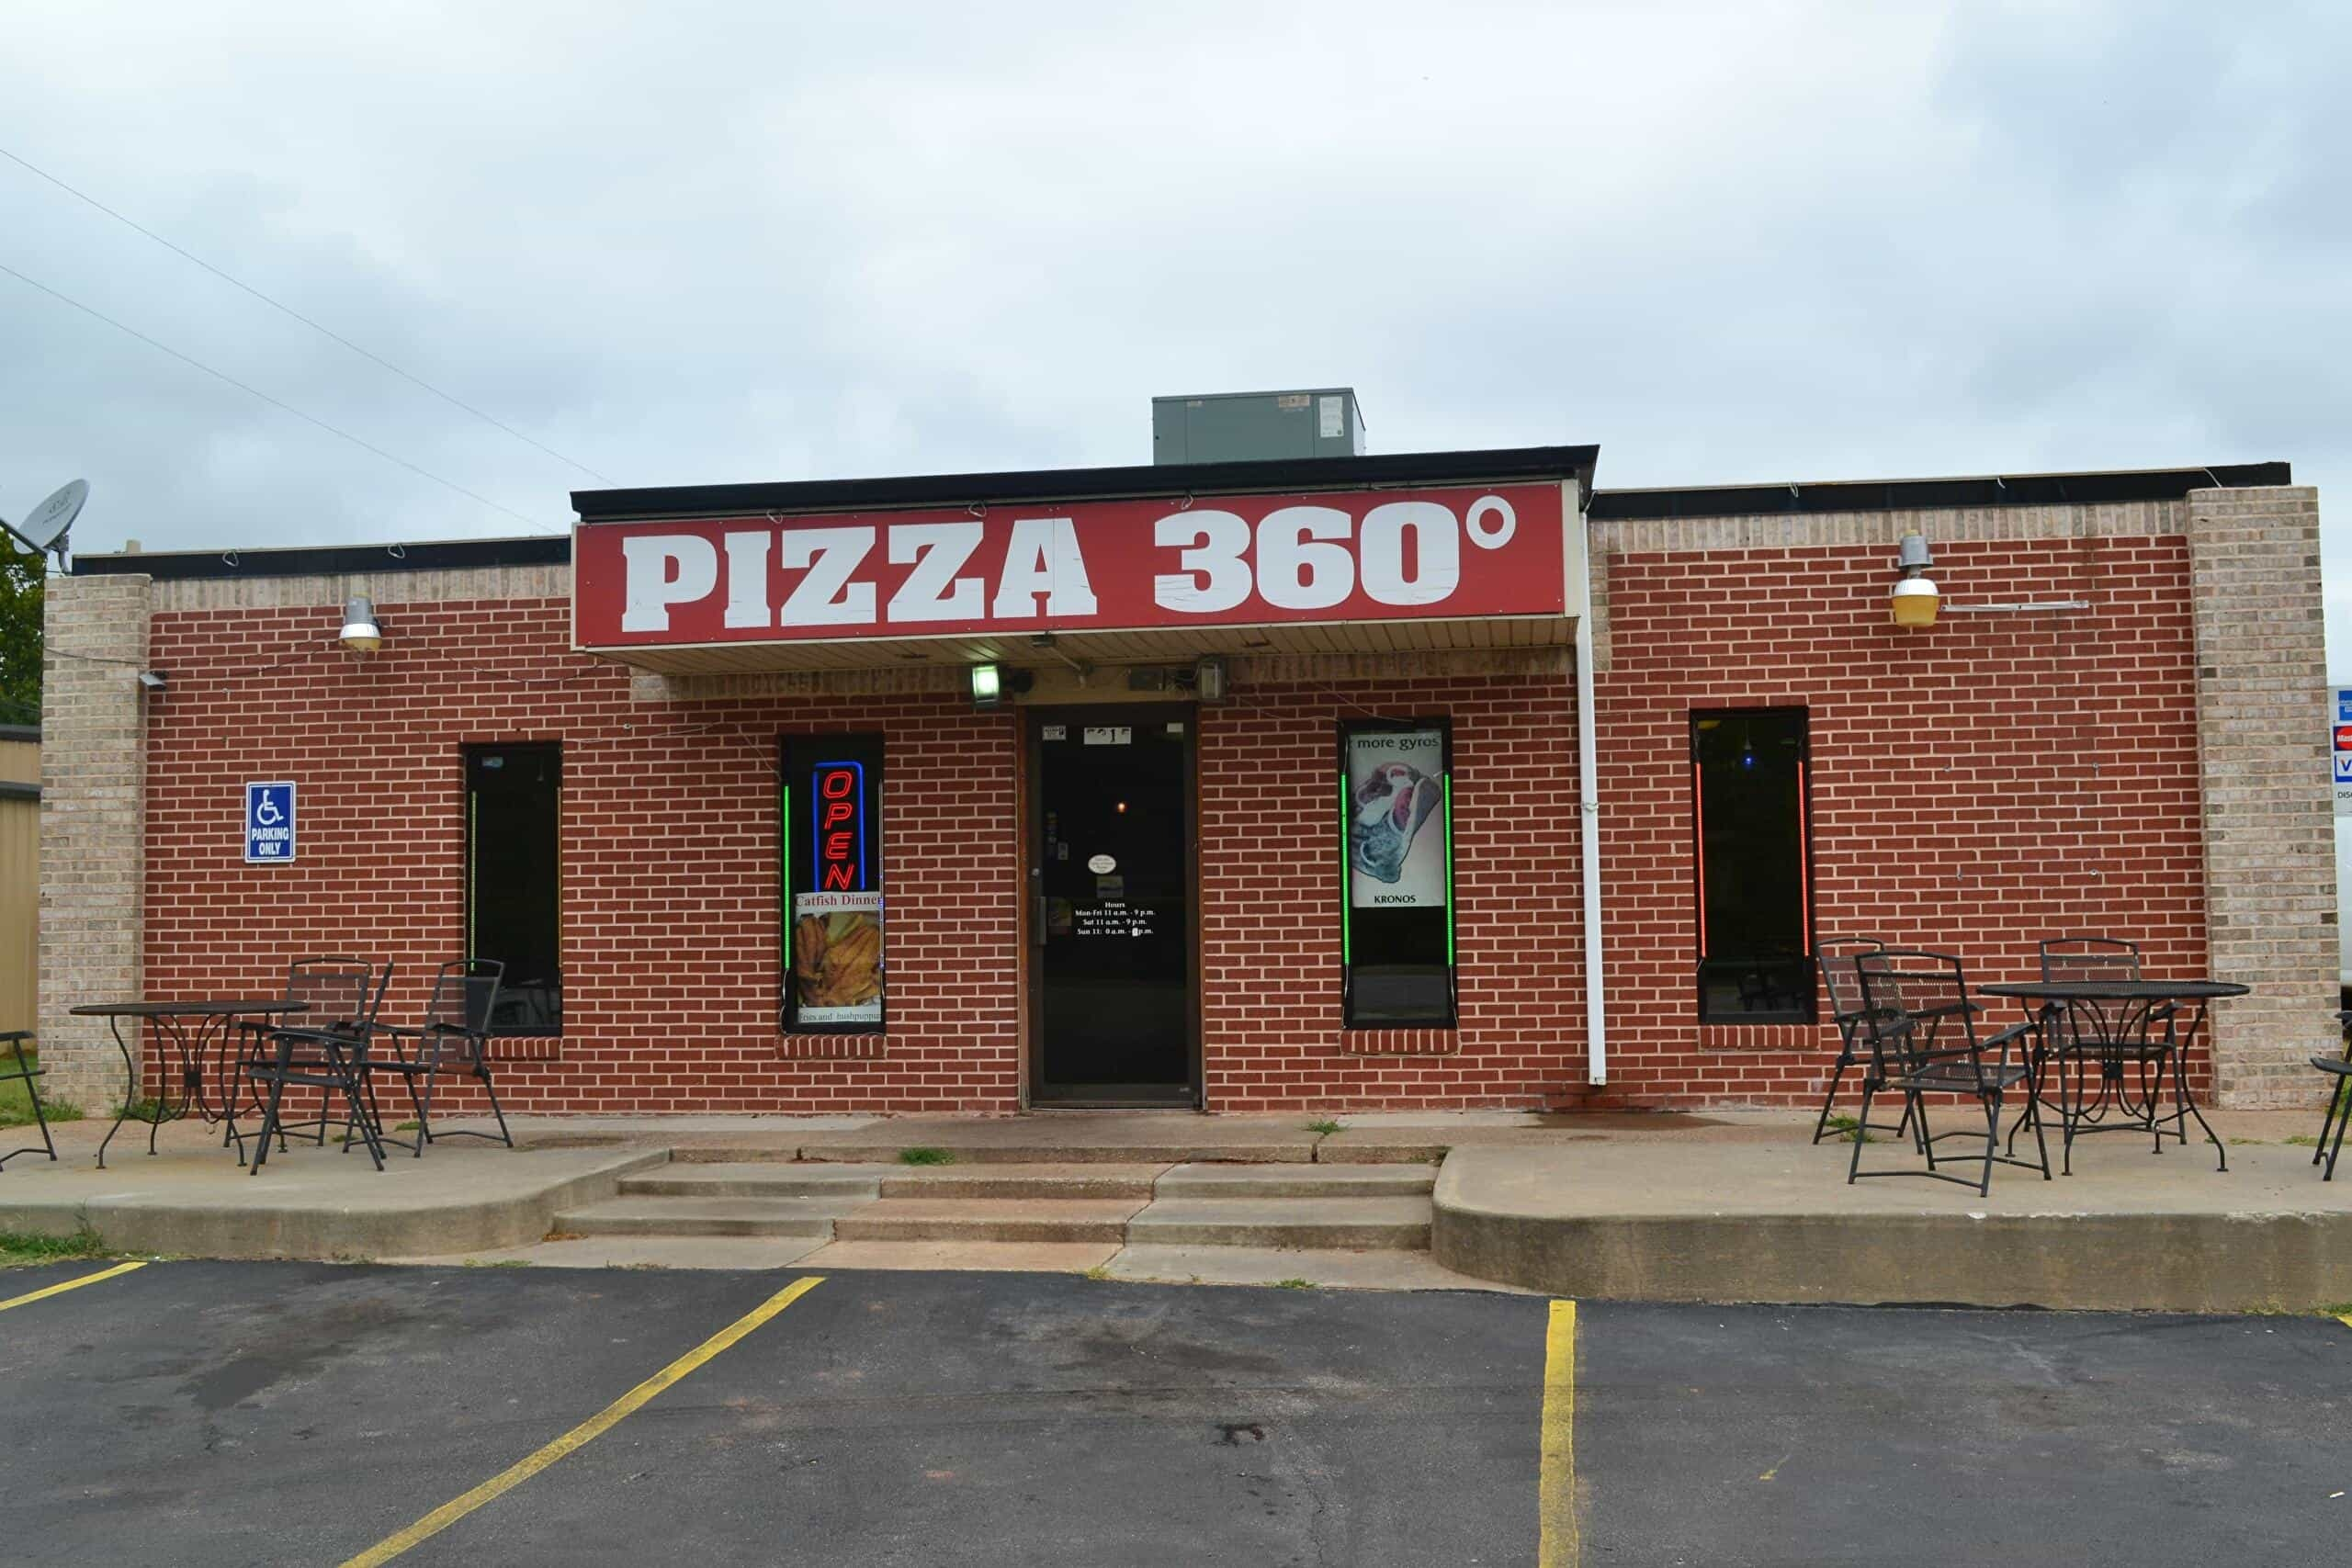 Pizza 360 in Tuttle, Oklahoma